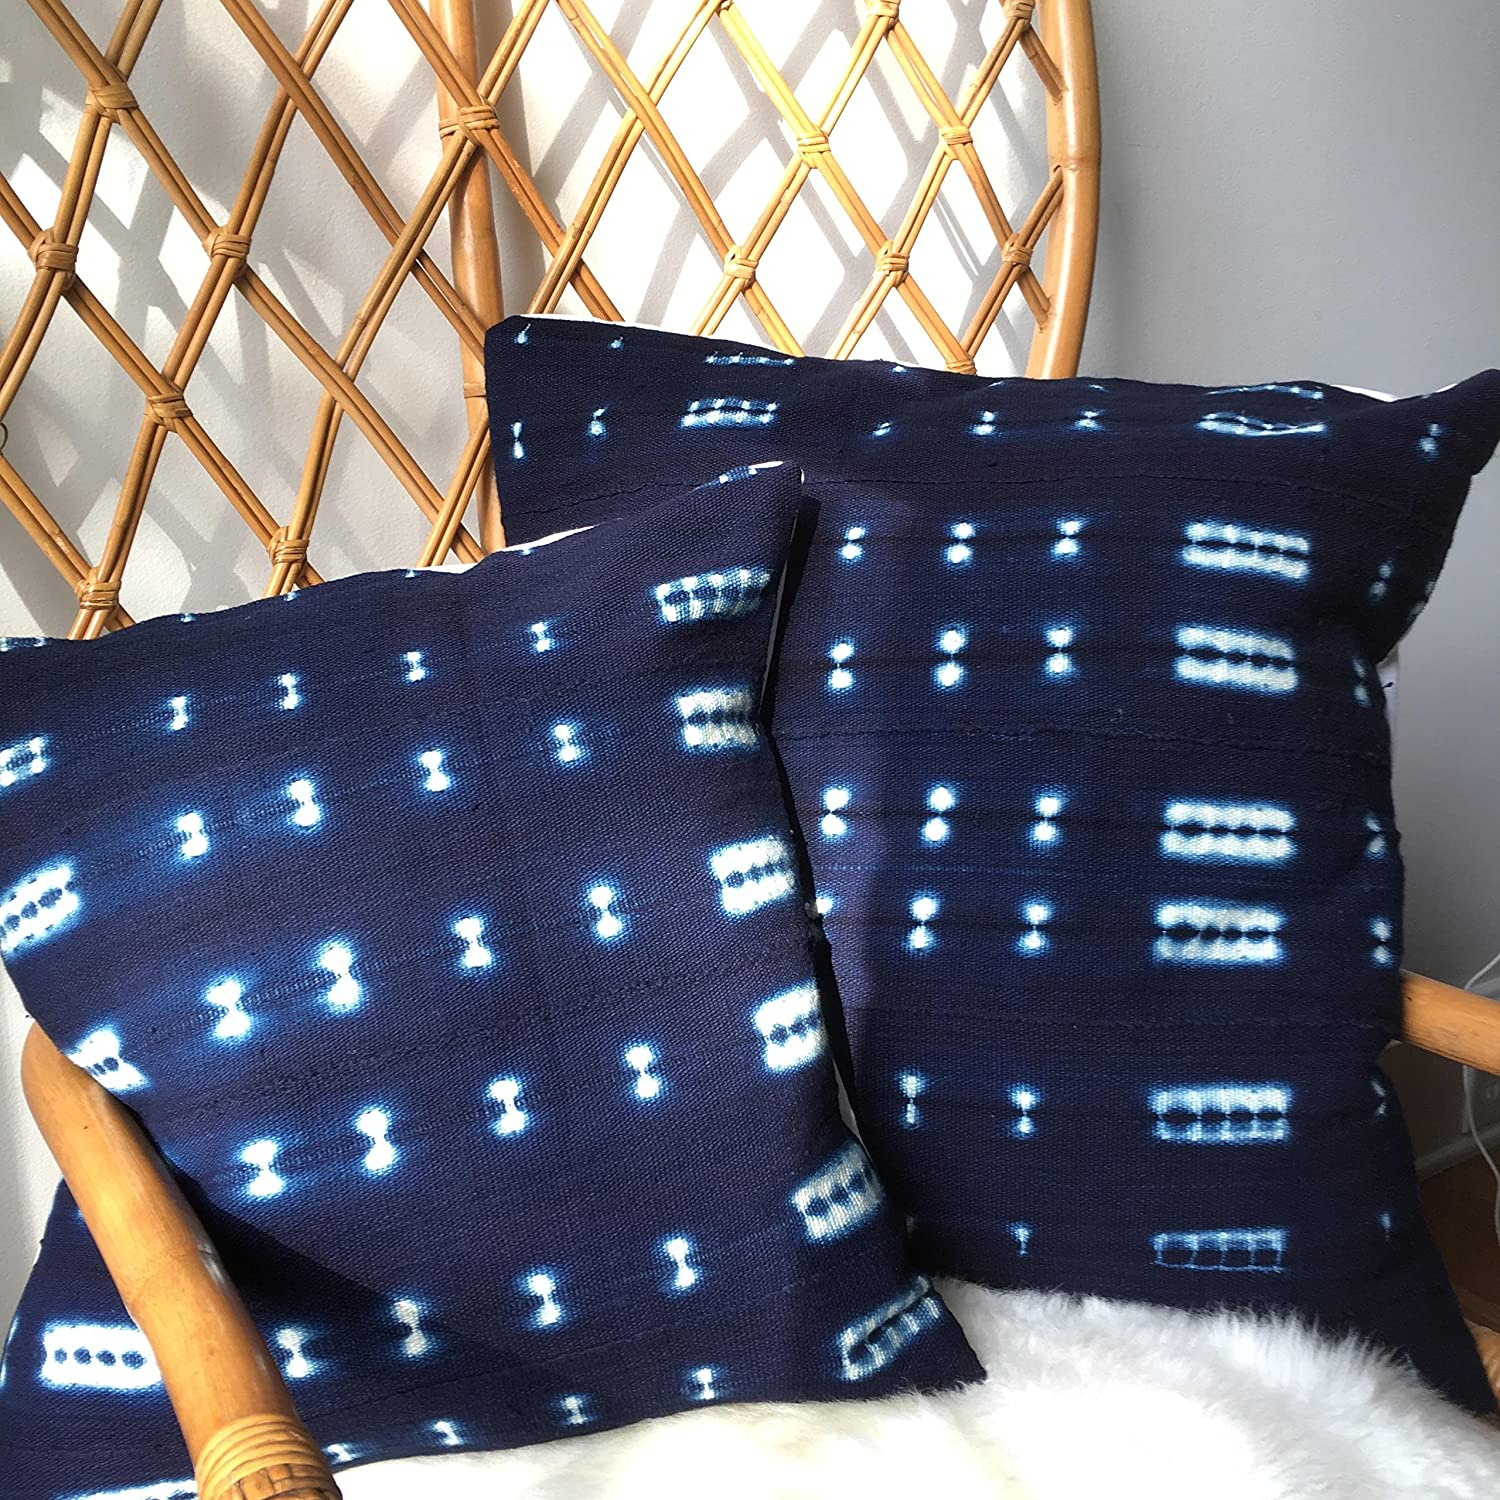 Shibori Indigo Blue or Black & White Vintage African Mudcloth Pillow Covers - 16 x16, 18 x18, 20 x 20, 25 x 25 - Message for custom Sizes - Cover, Africa